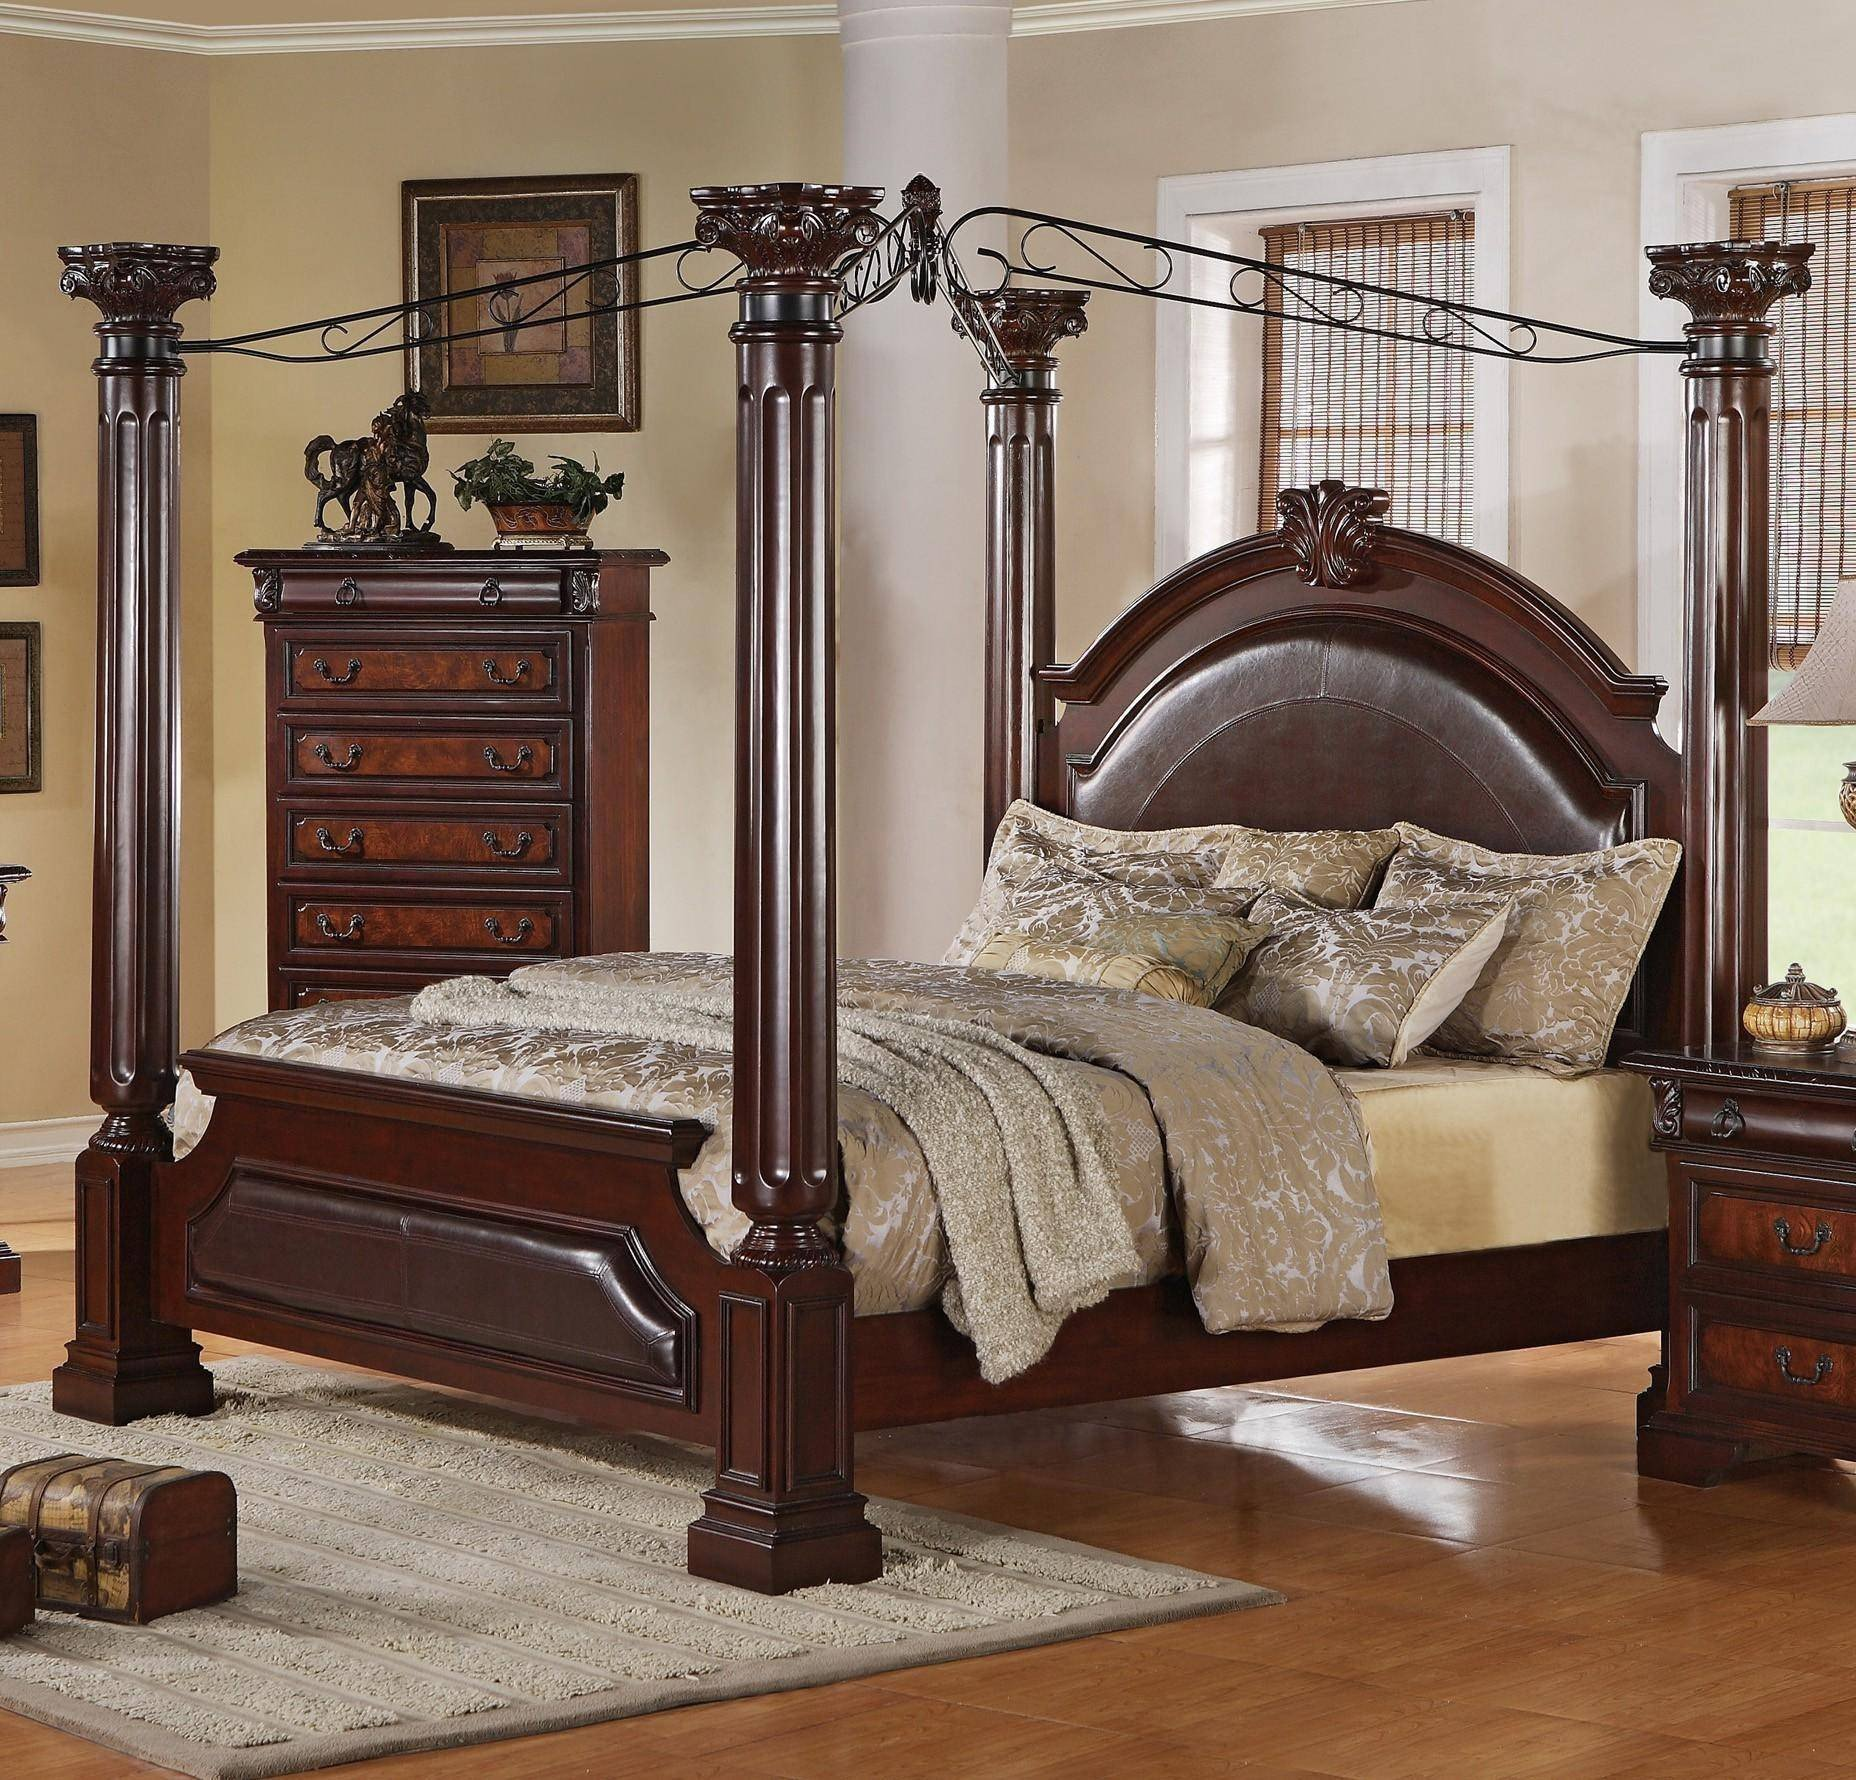 California King Canopy Bedroom Set Unique Neo Renaissance B1470 Q Canopy Bedroom Set In 6 Pieces by